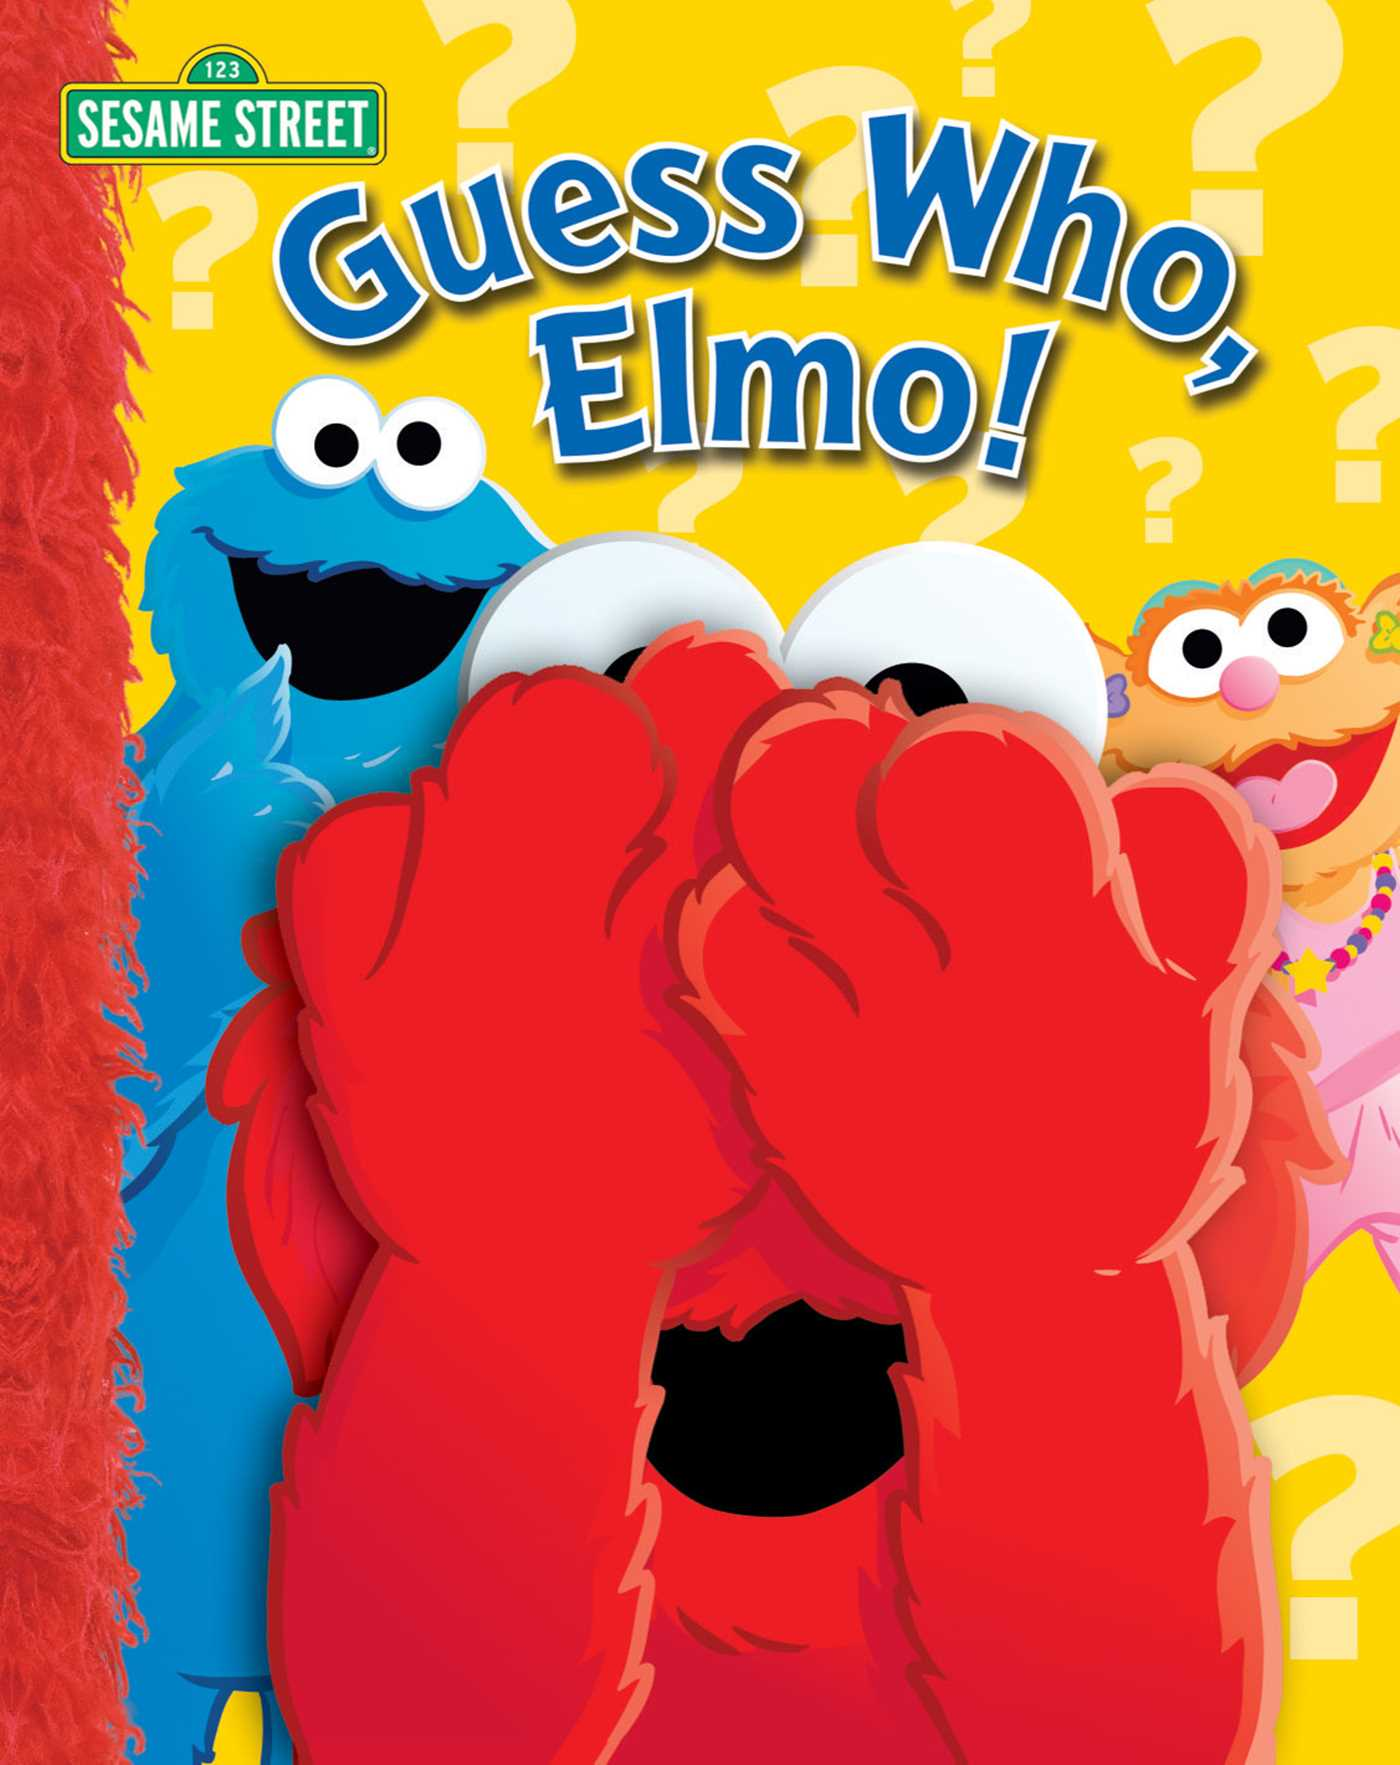 Sesame street guess who elmo 9780794412111 hr